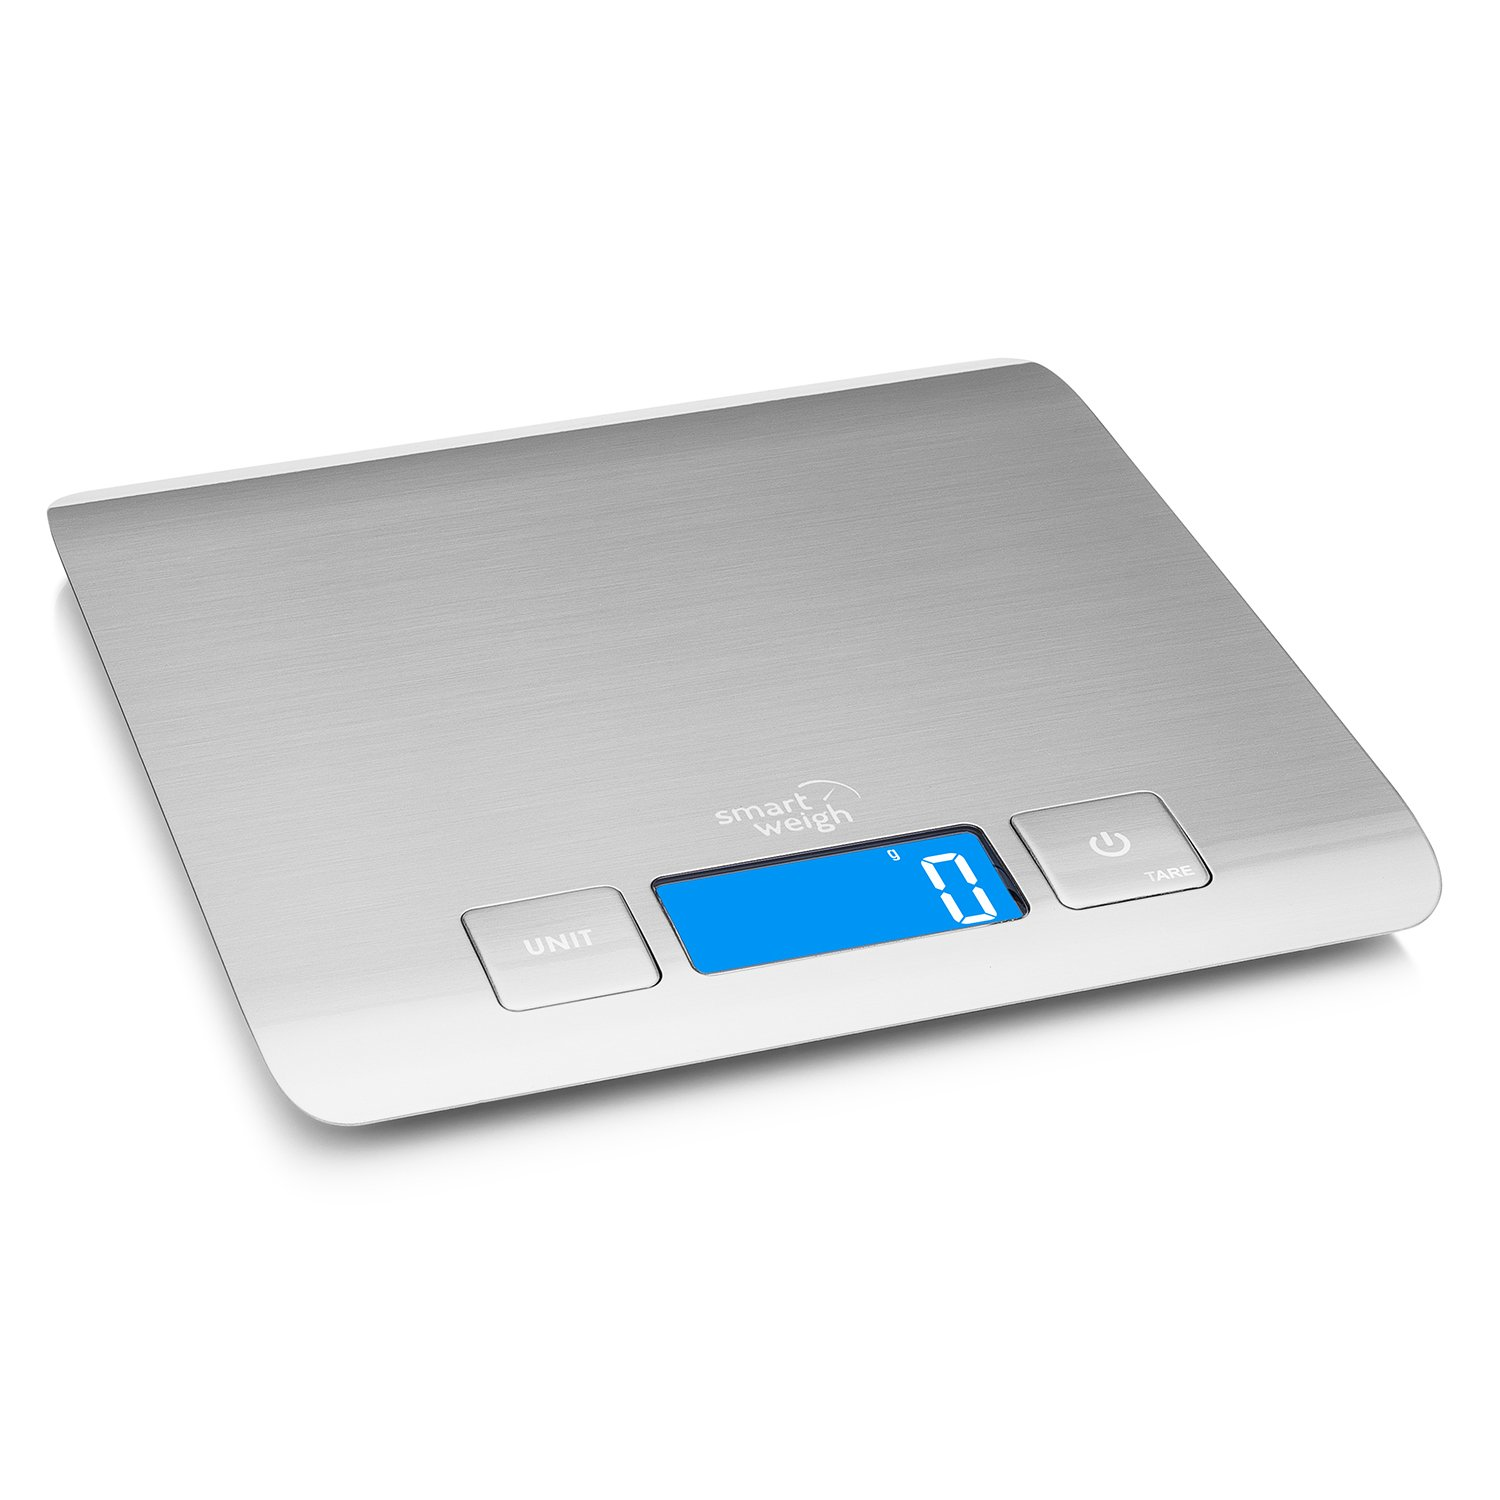 Smart Weigh Digital Food Scale, Multifunctional Electronic Kitchen Food Scale Stainless Steel, Cooking Scale for Food and Baking Ingredient Weight, 11 Pound / 5 Kilogram Capacity (Batteries Included) TZ5000